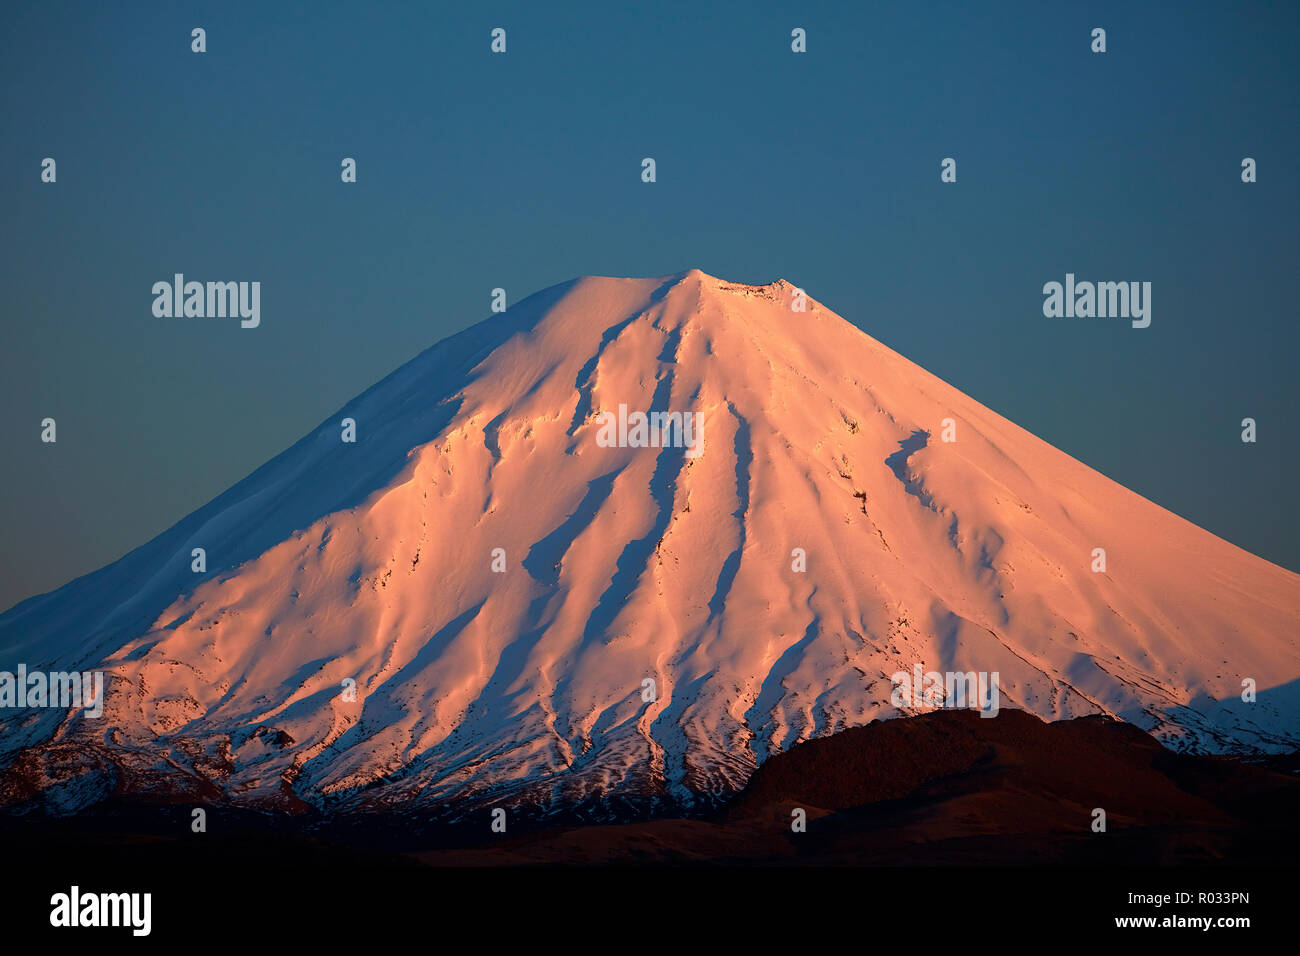 Alpenglow on Mt Ngauruhoe at dawn, Tongariro National Park, Central Plateau, North Island, New Zealand - Stock Image